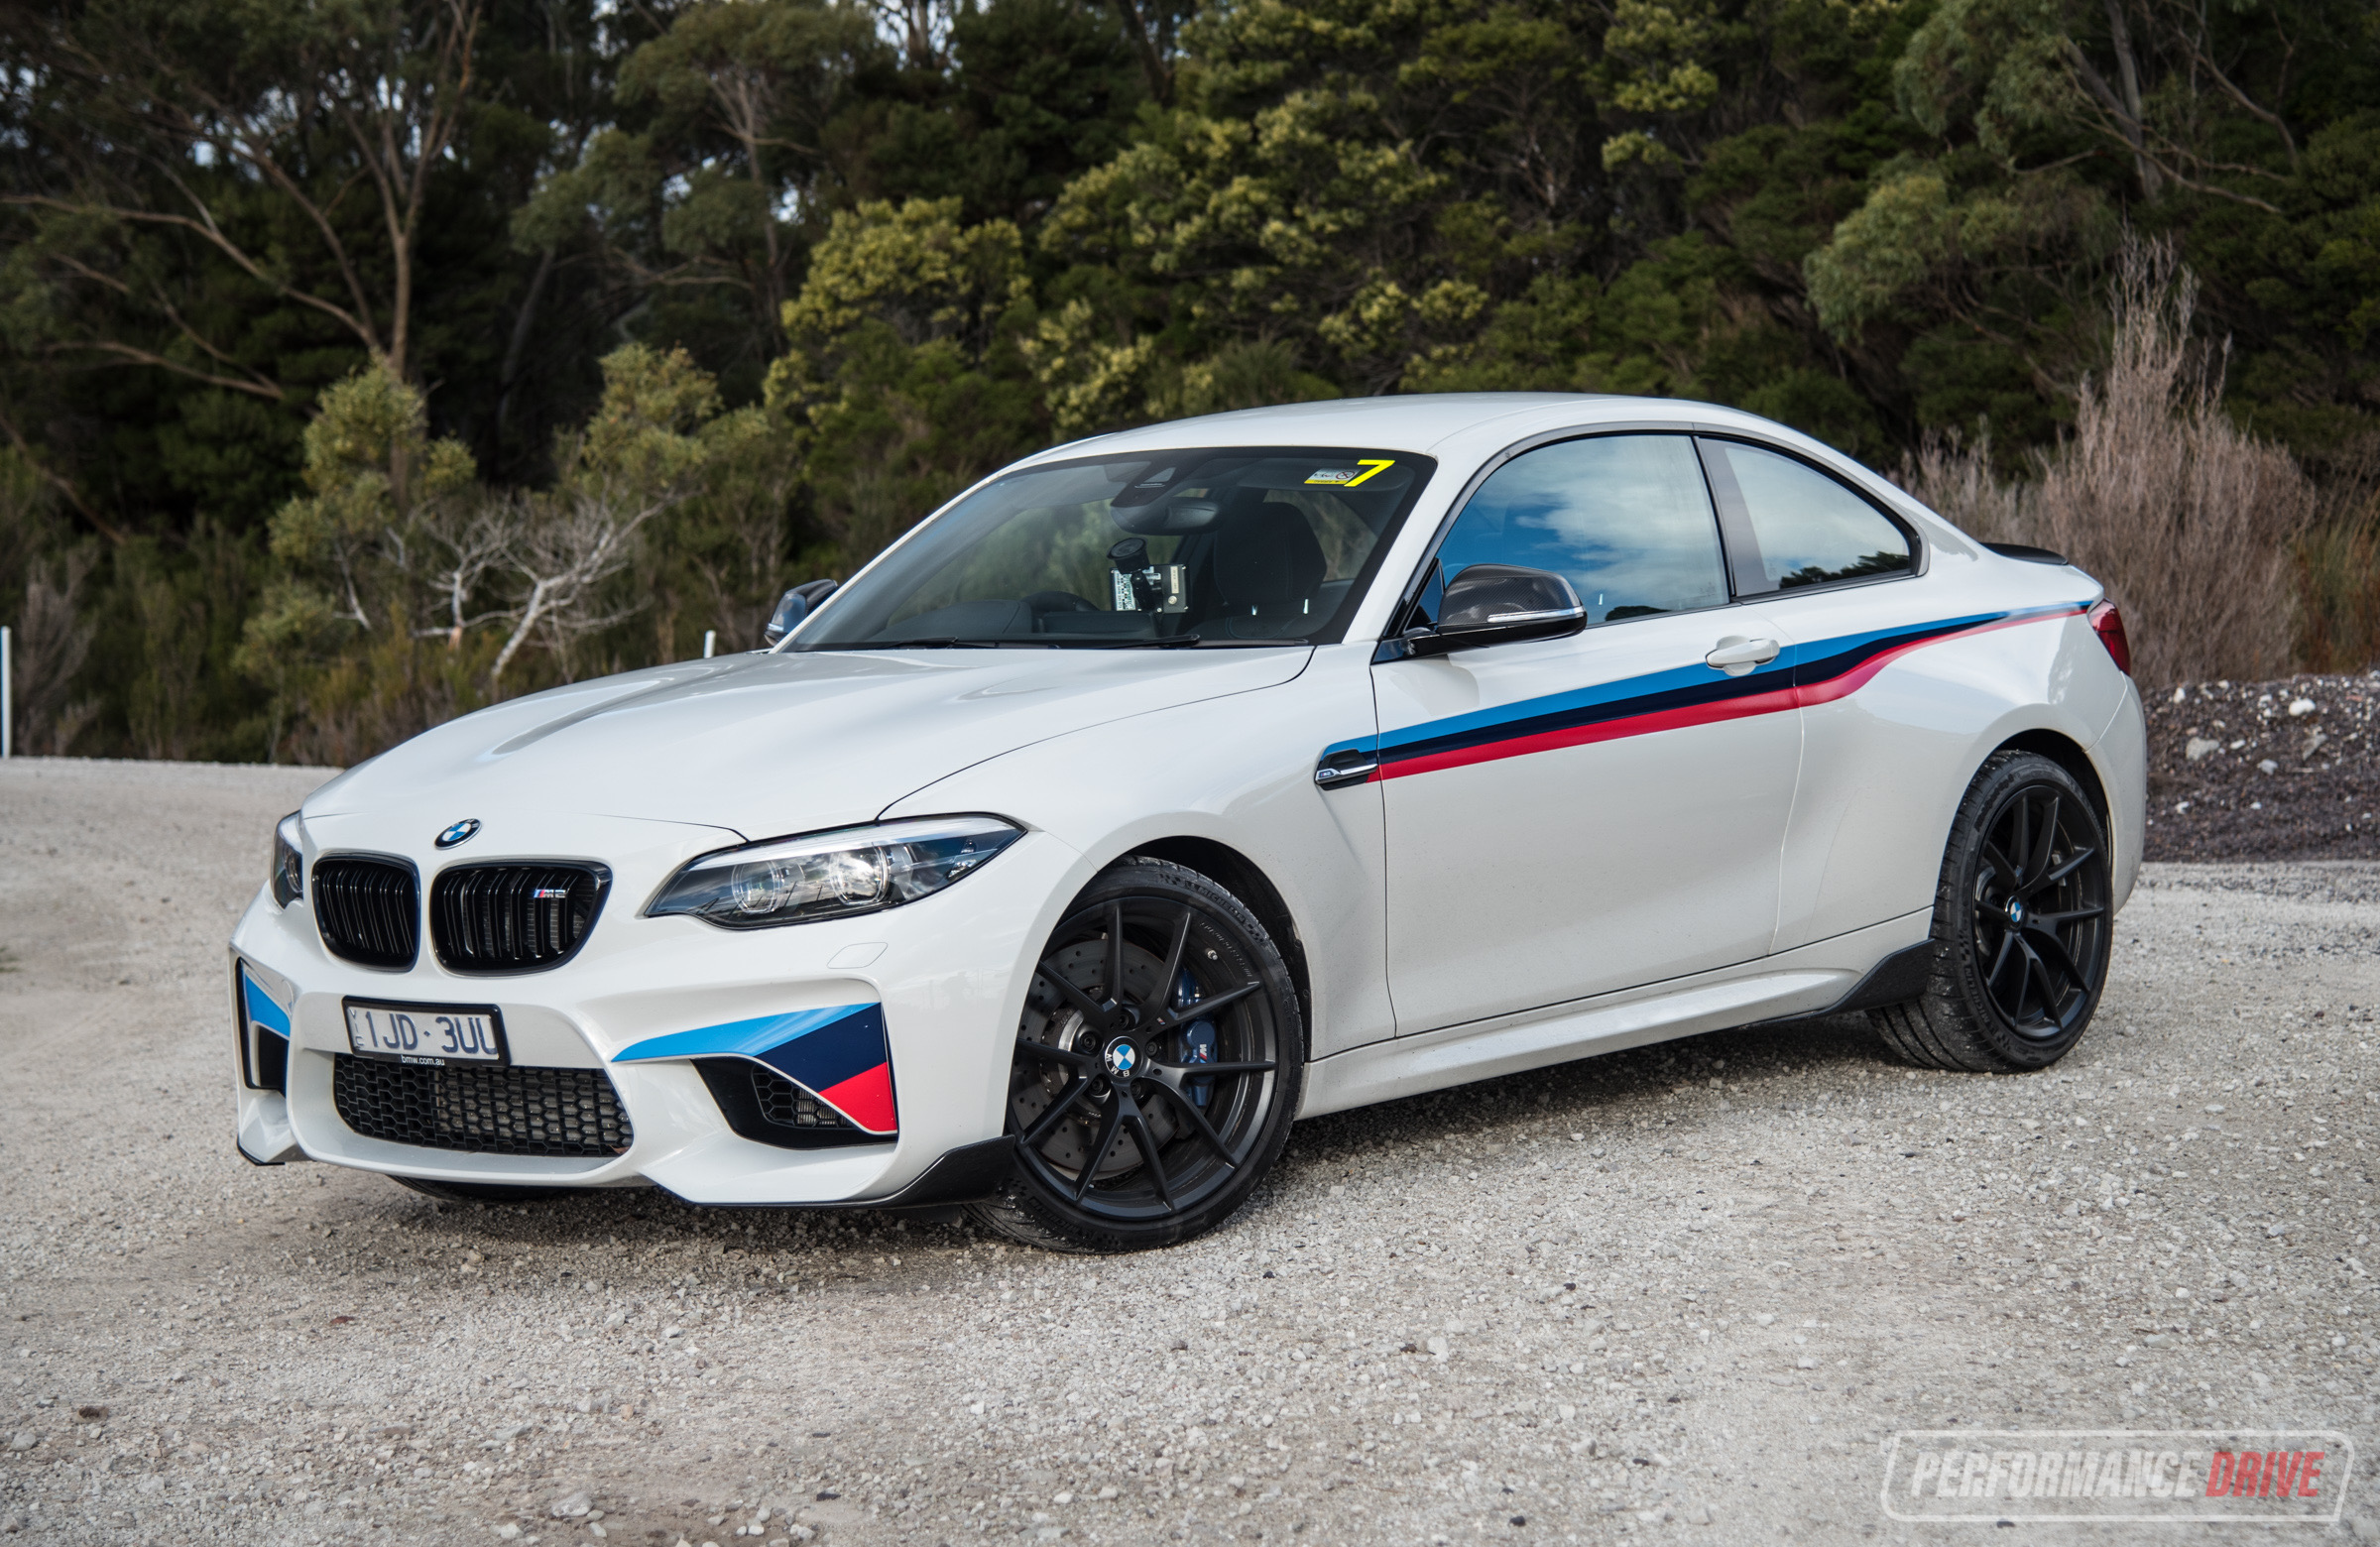 2018 bmw m2 m performance review australian launch video performancedrive. Black Bedroom Furniture Sets. Home Design Ideas